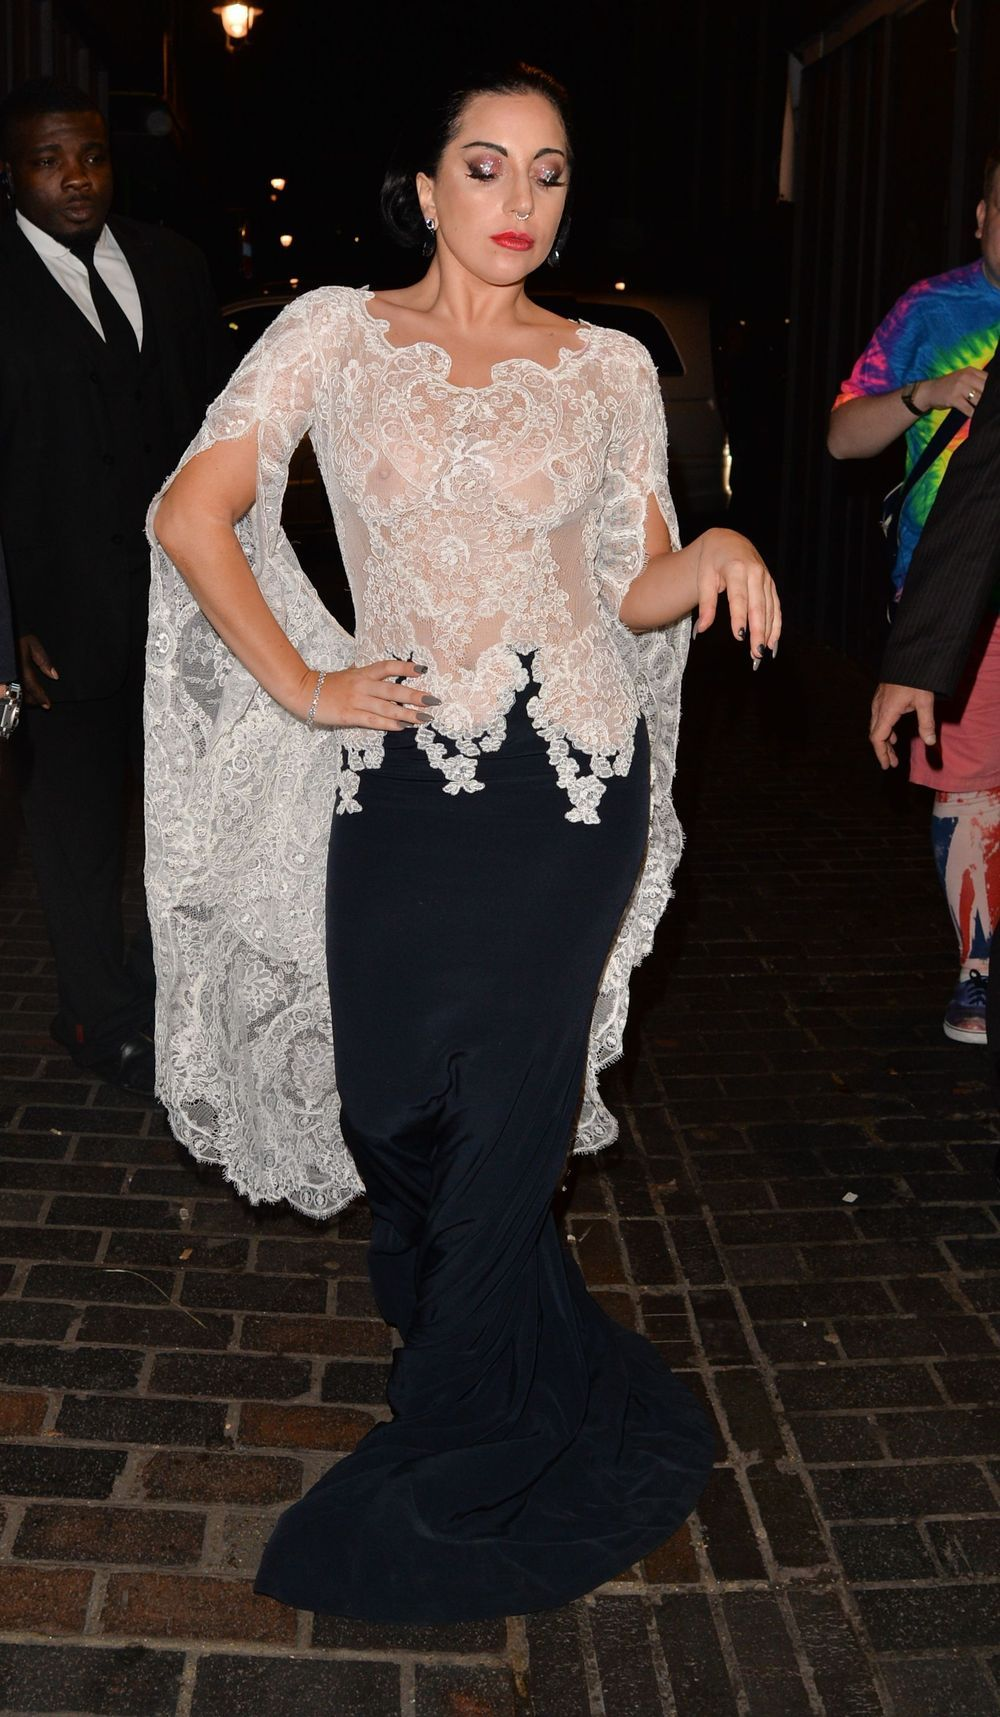 Lady Gaga - 23 Oct - From a gothic Gaga to a blooming Kate Middleton; it's the week's best dressed | Stylist Magazine